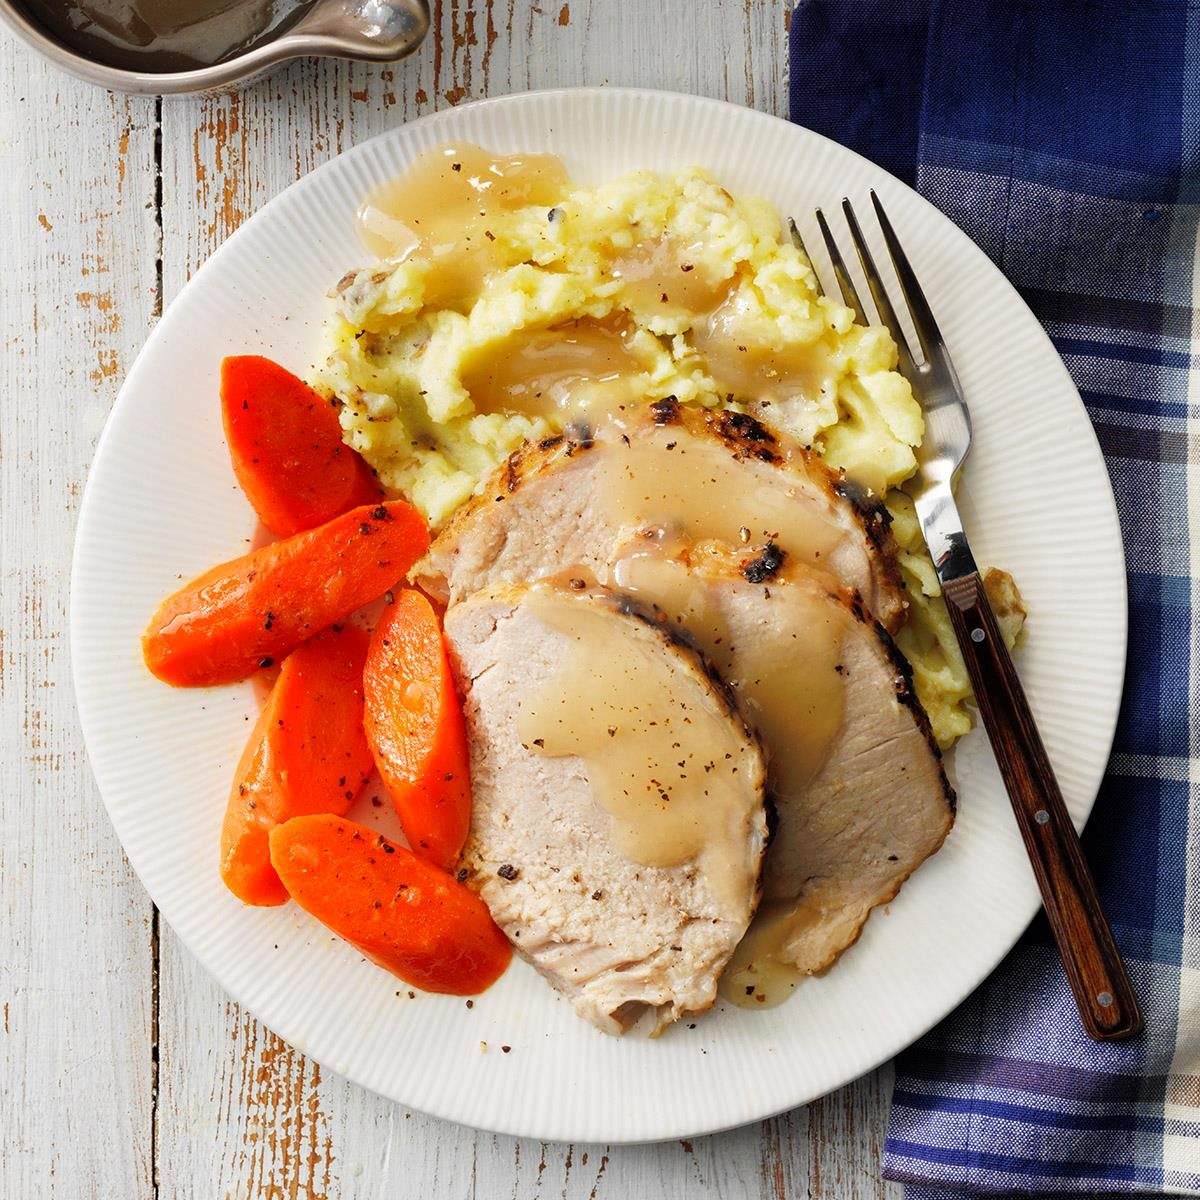 Day 2: Country-Style Pork Loin